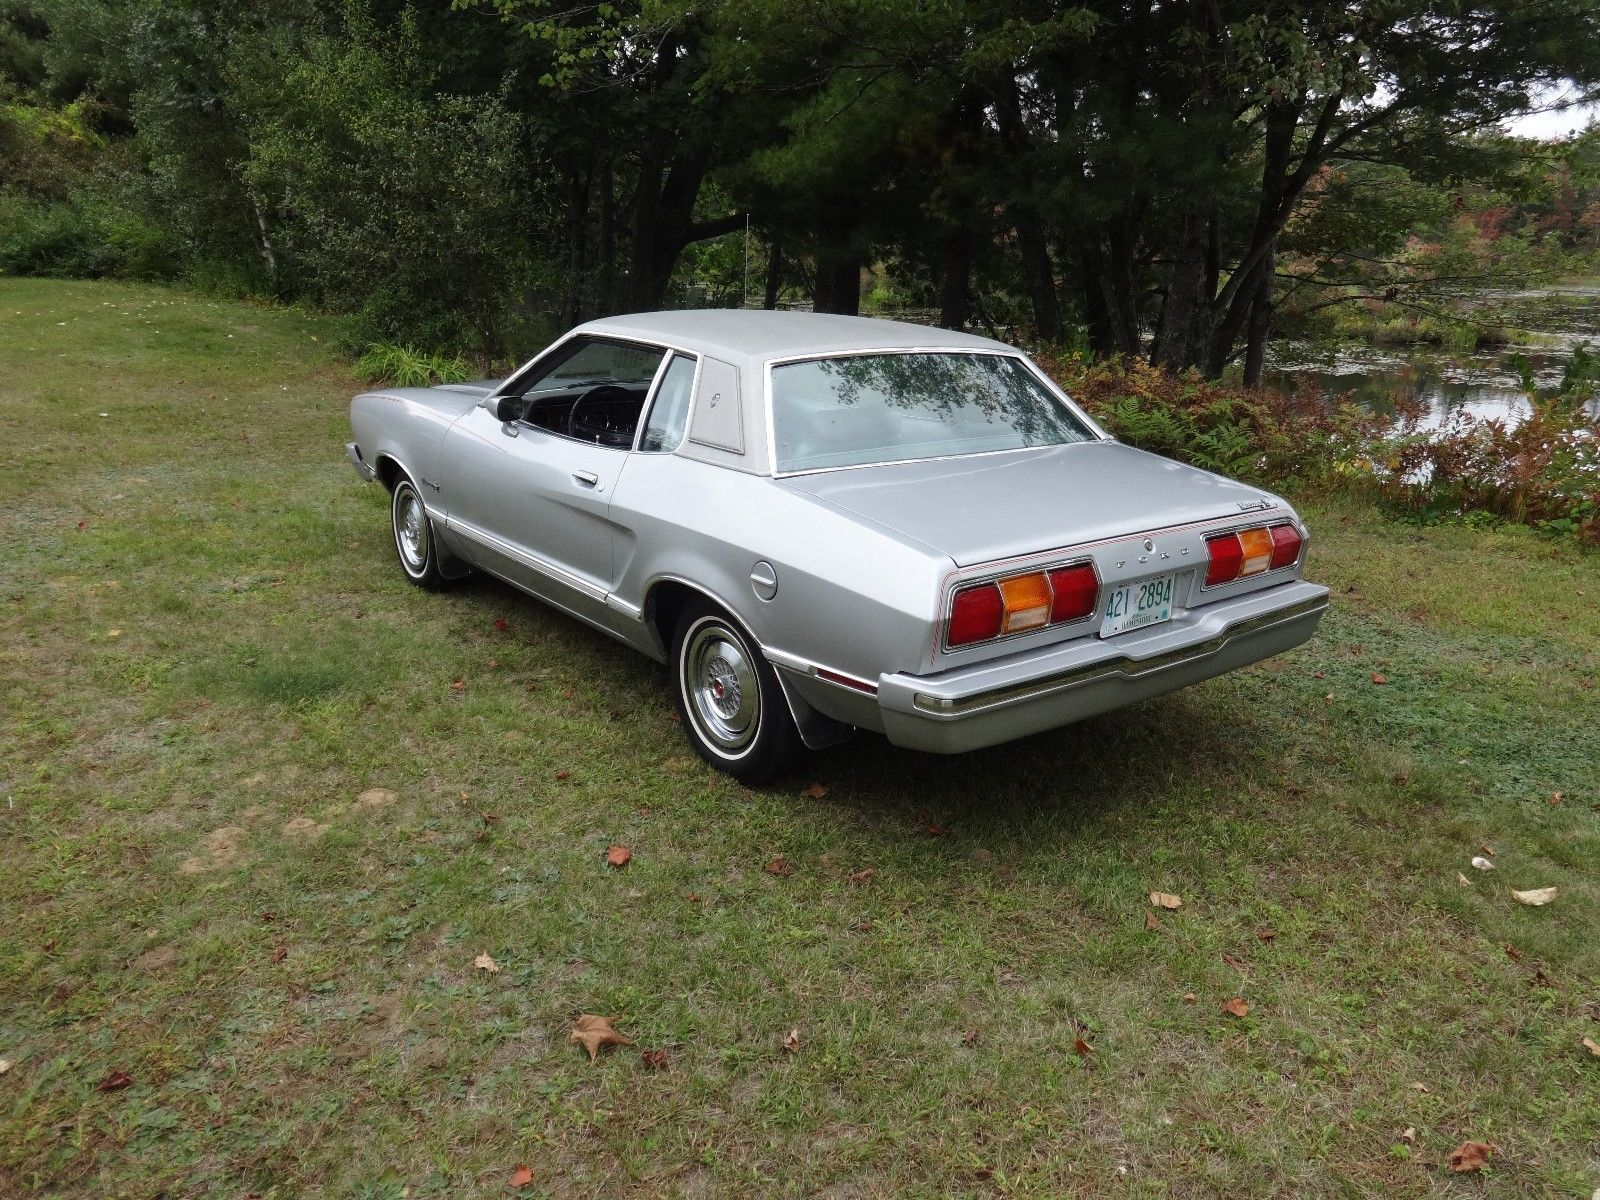 1976 Ford Mustang II Values Hagerty Valuation Tool